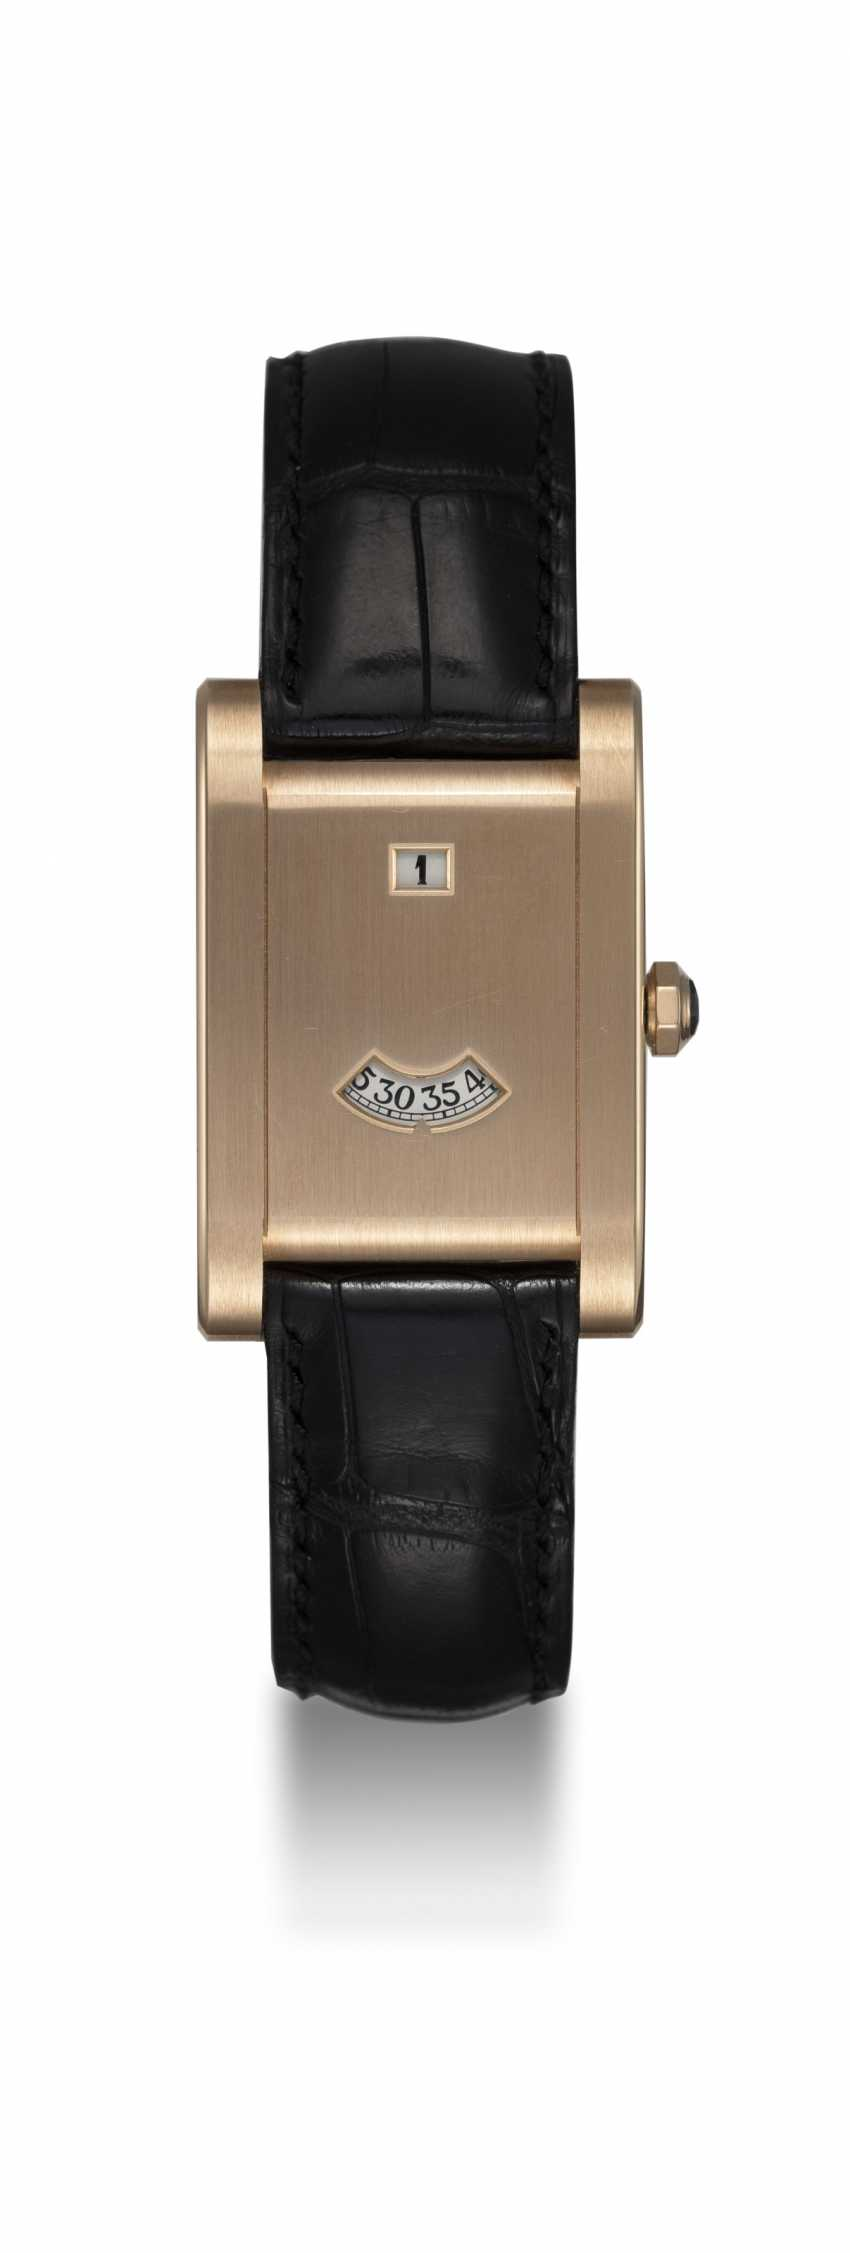 CARTIER. A LIMITED EDITION TANK JUMPING HOURS WRISTWATCH, REF.2817, 061/100 - photo 3